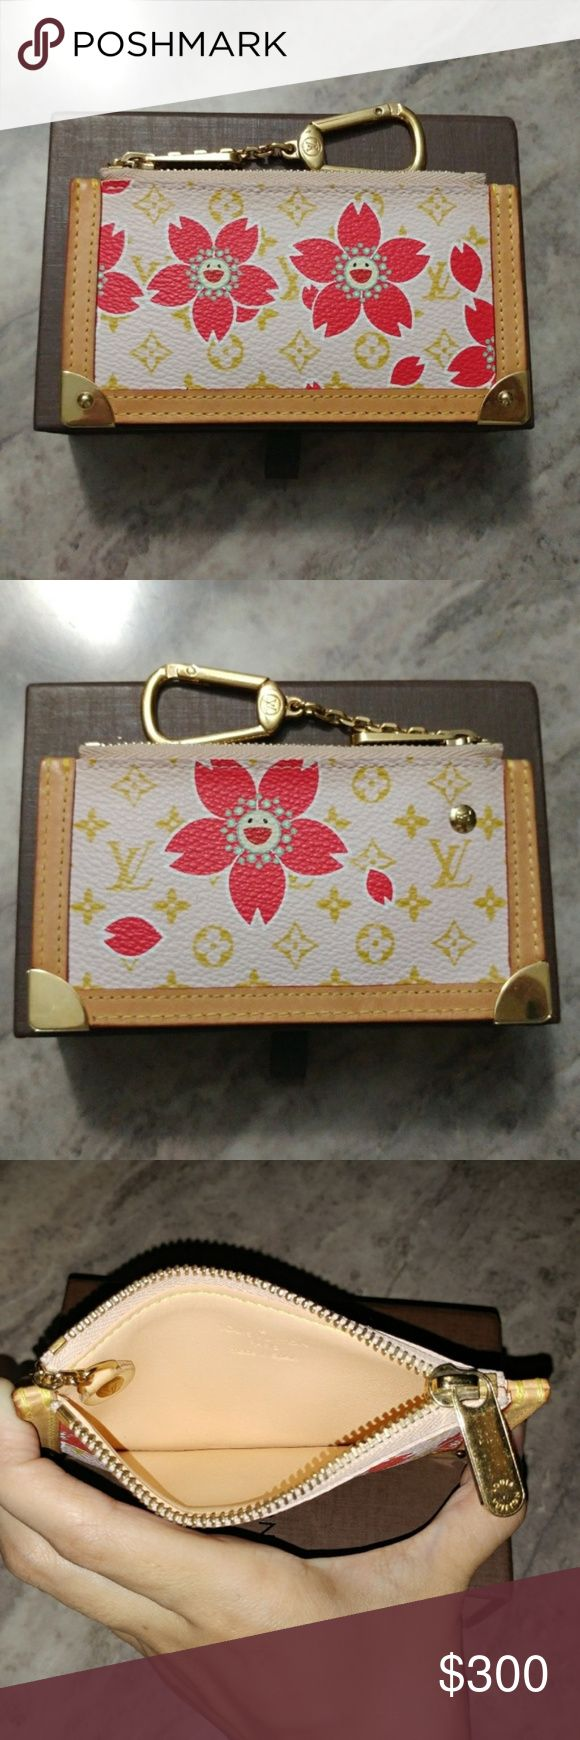 100% AUTHENTIC LOUIS VUITTON COIN PURSE RARE! + 100% AUTHENTIC GUARANTEED. I NEVER SELL OR BUY FAKES! + SERIAL NUMBER IS CA0053 AND IS ALSO STAMPED ON THE INSIDE OF THE PIECE. + FROM CHERRY BLOSSOM COLLECTION BY TAKASHI MURAKAMI. SUPER HARD TO FIND! + NEARLY PERFECT CONDITION AFTER 14+ YEARS! + MAKE PRACTICAL OFFERS. NO LOW BALLING ALLOWED! + I NEVER TRADE! Louis Vuitton Bags Wallets